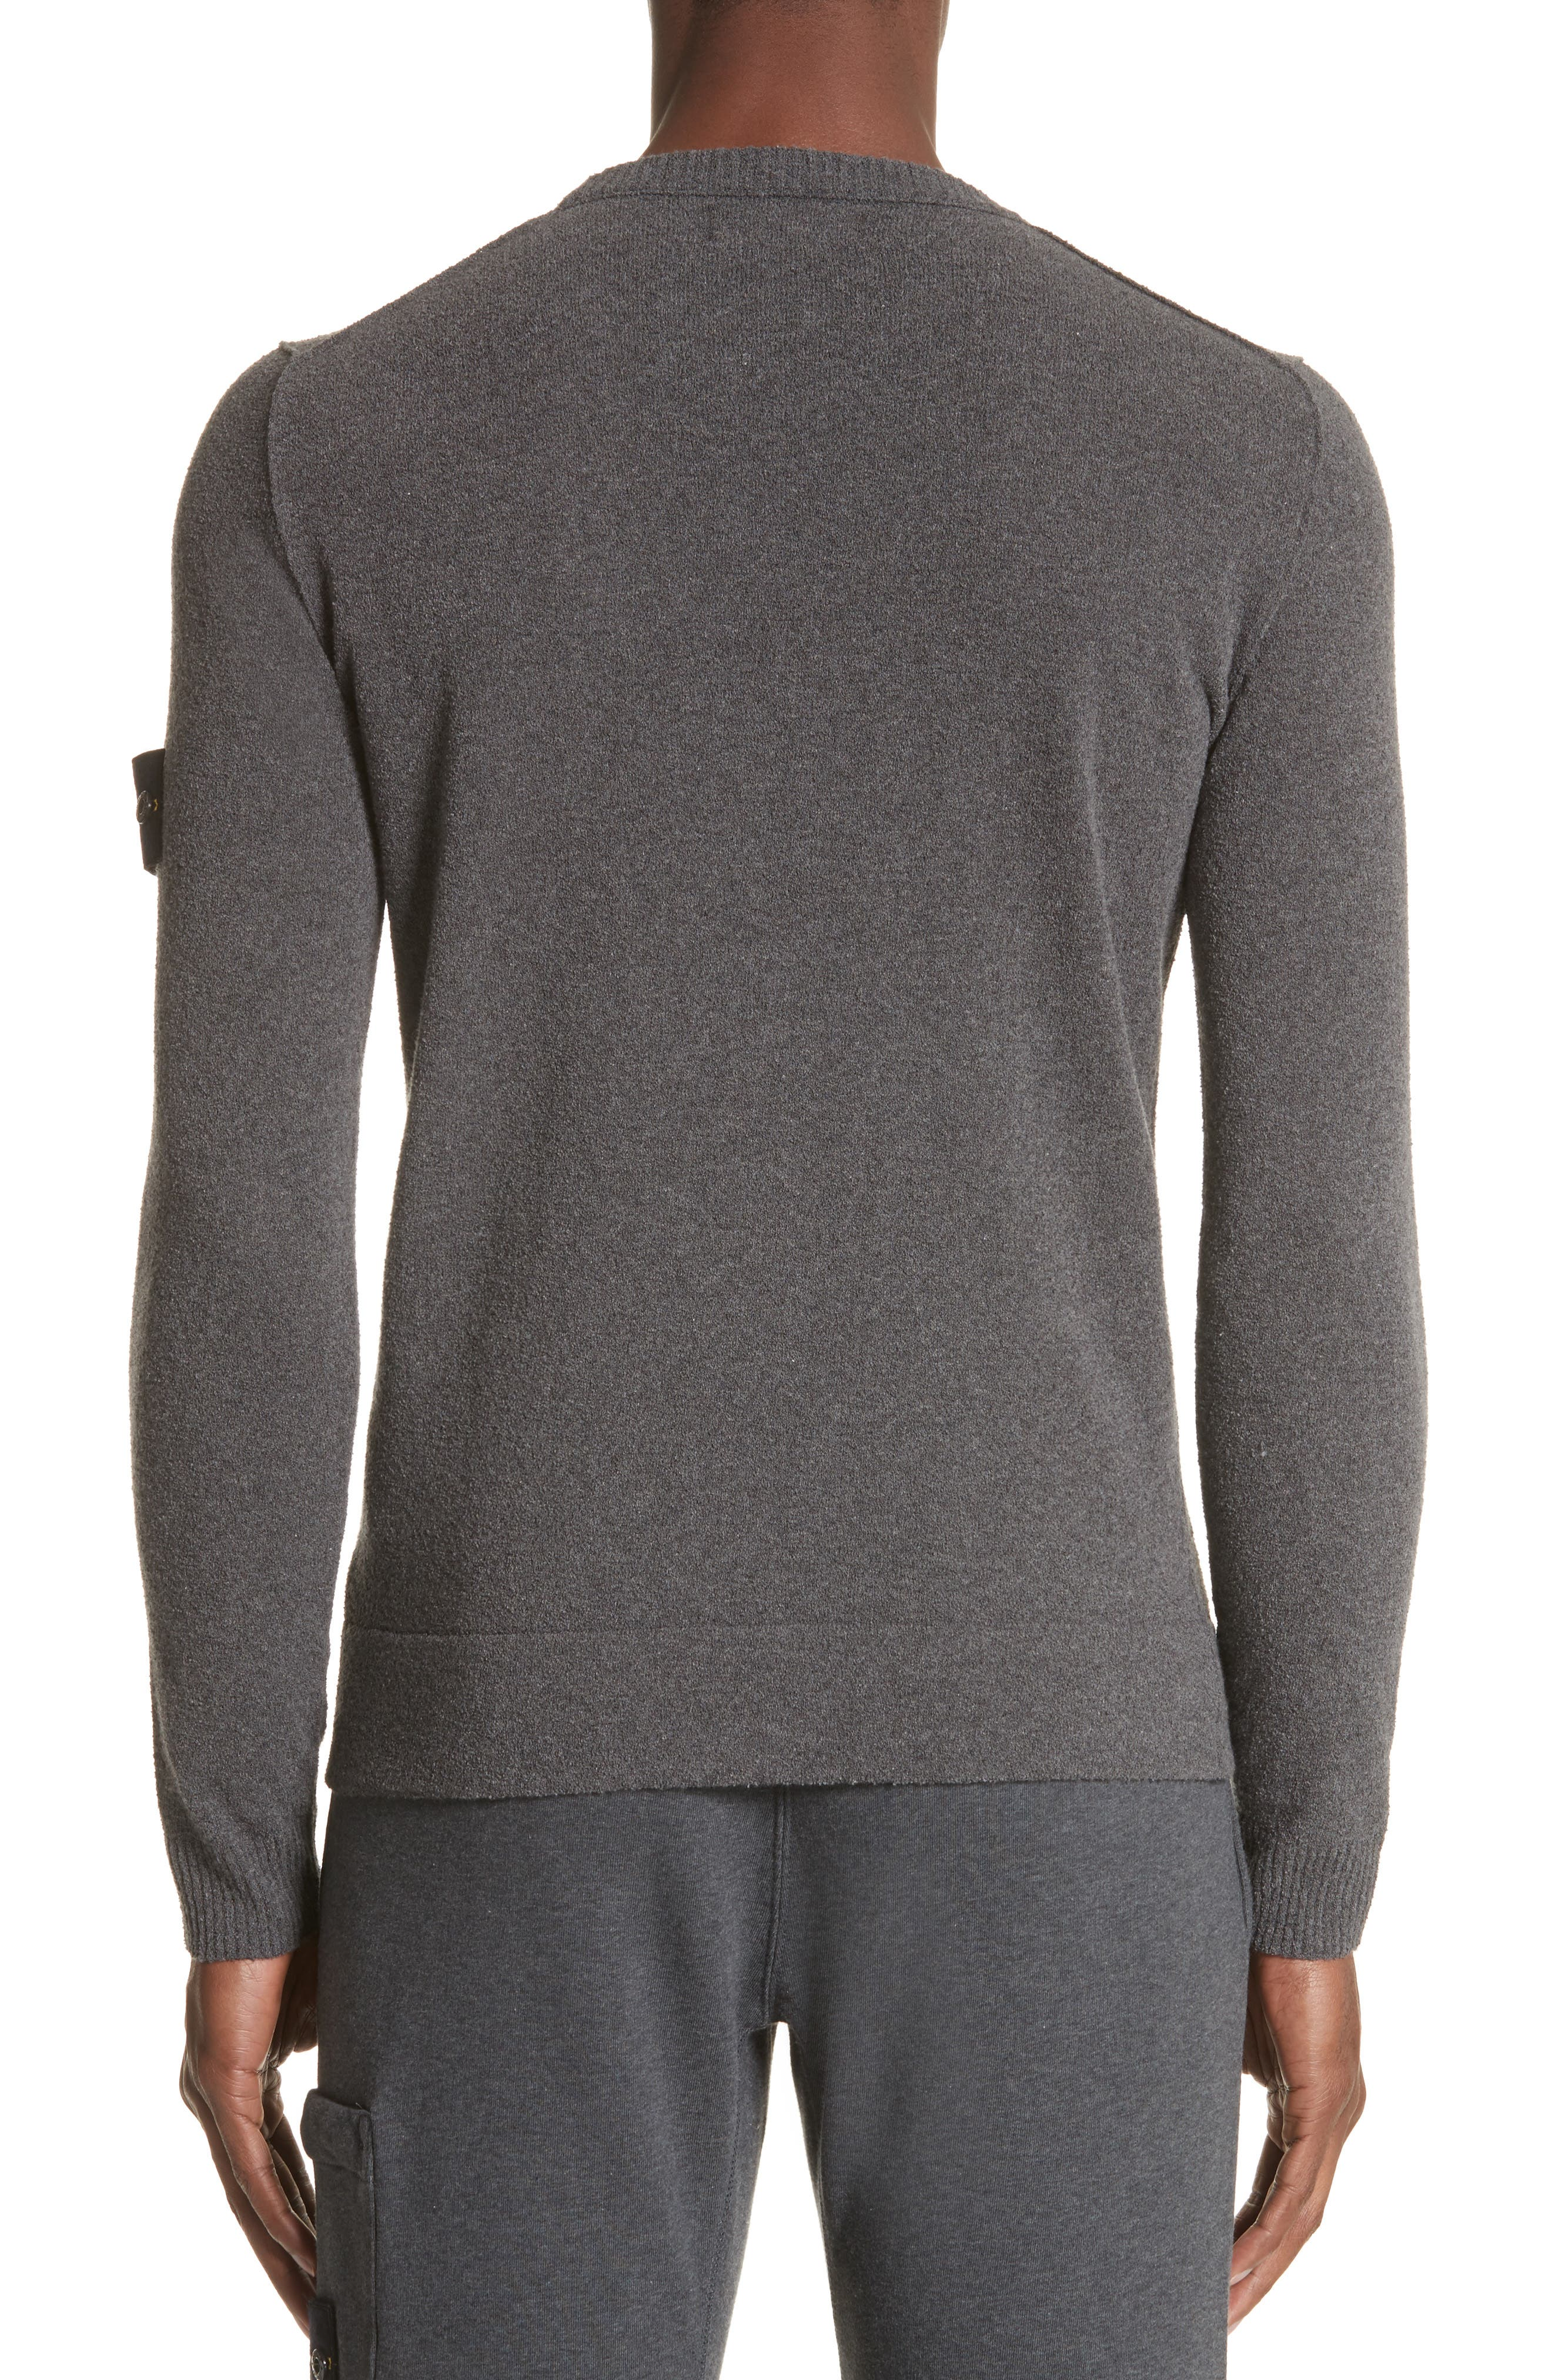 Terry Knit Crewneck Sweatshirt,                             Alternate thumbnail 2, color,                             020